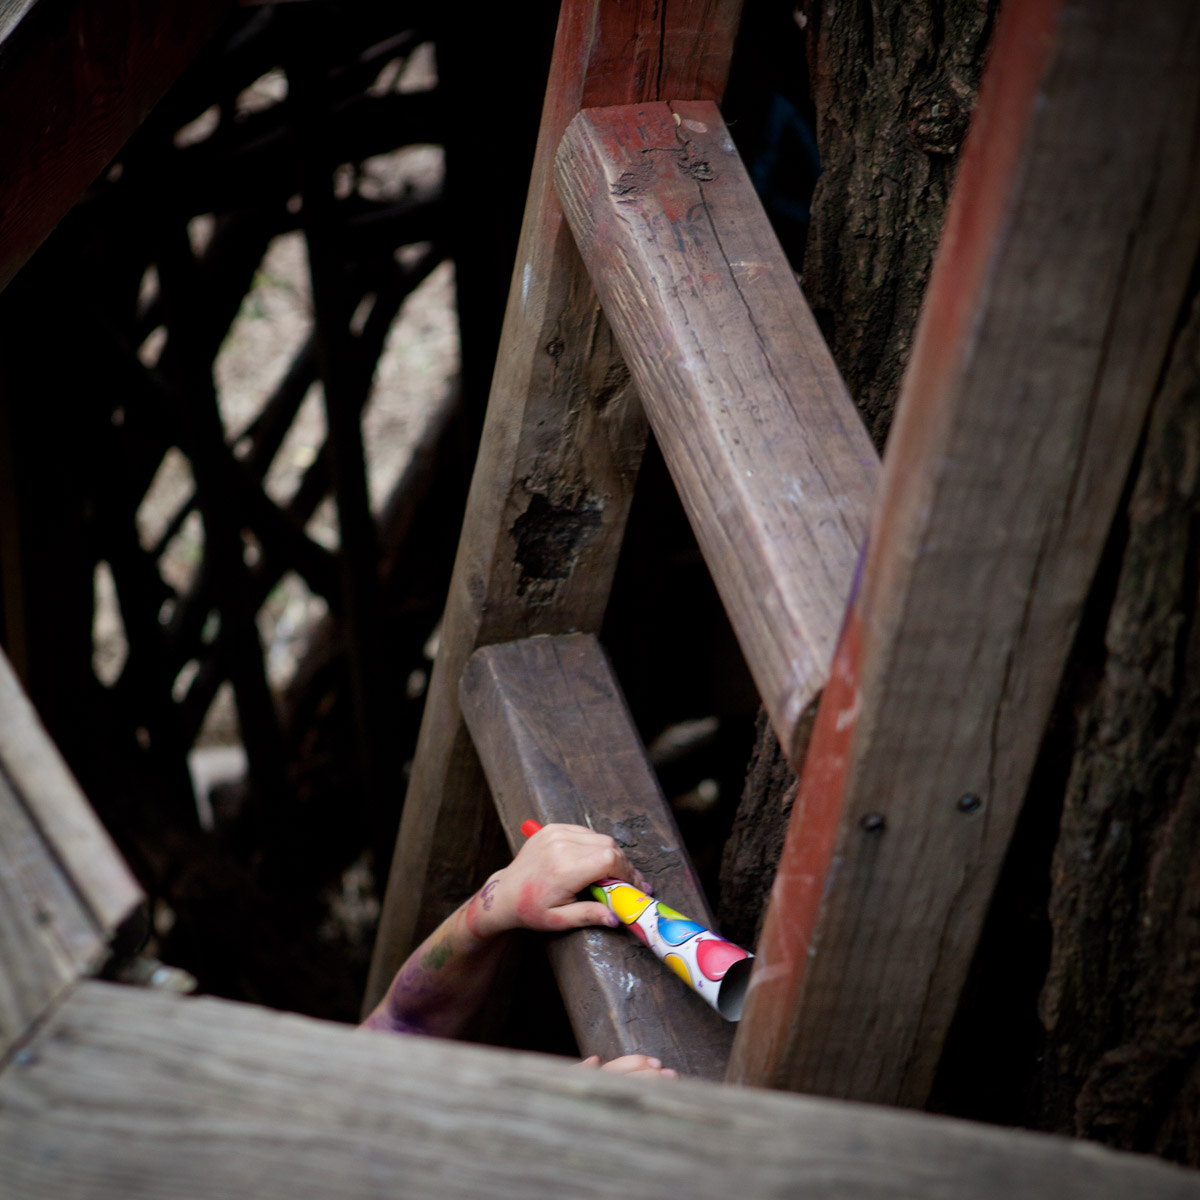 A child climbs the ladder of the treehouse while attending a birthday party at el Jardin del Paraiso in the East Village.